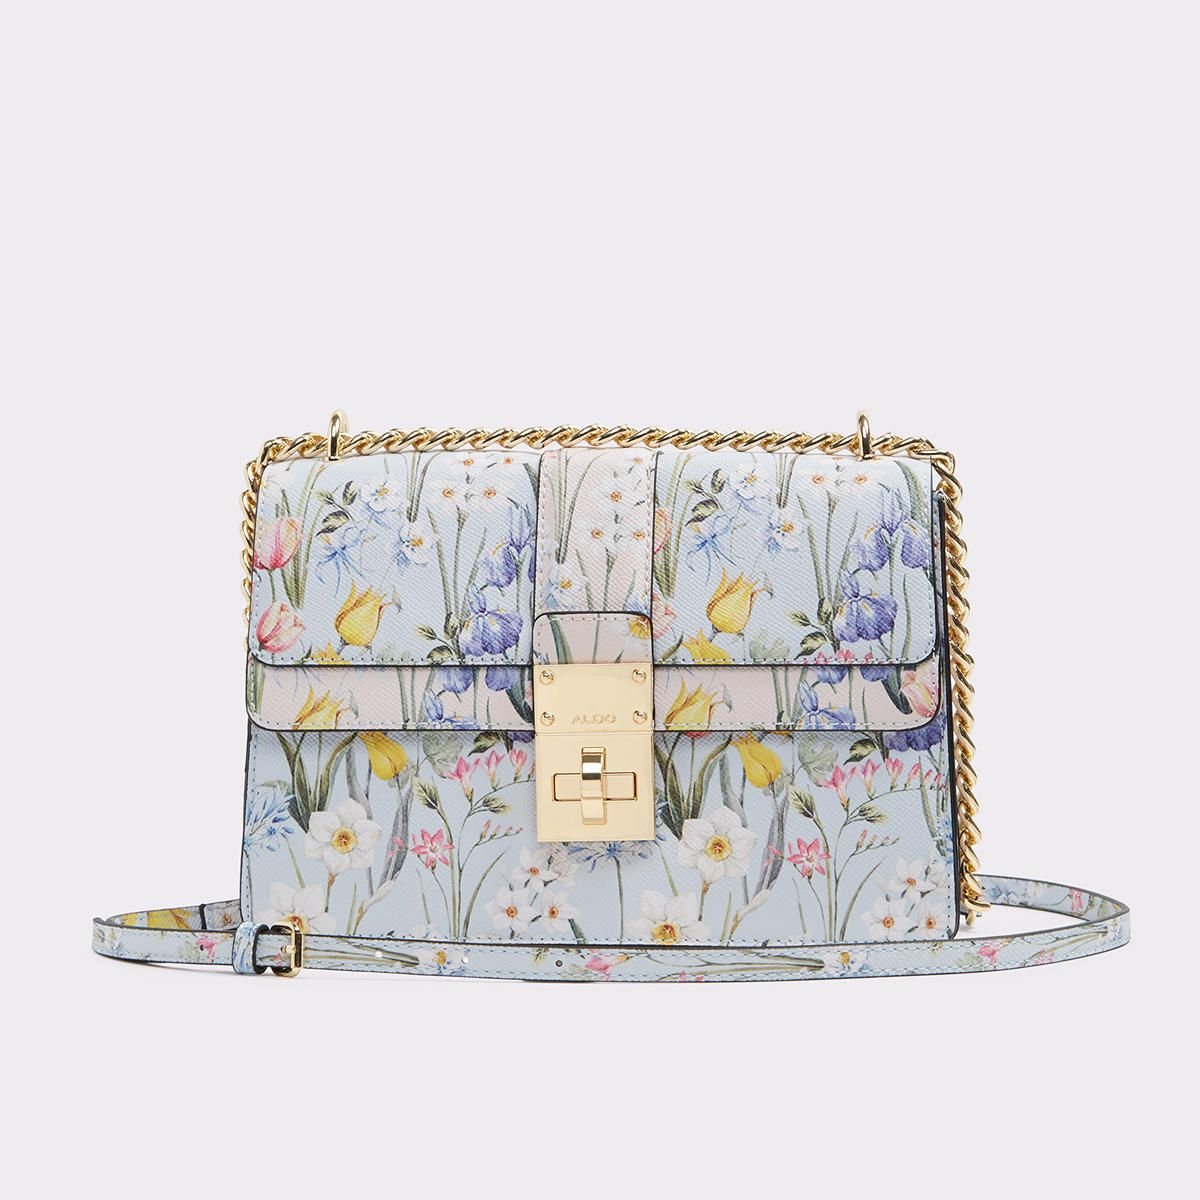 Cerano Sweet florals pair with structured hardware on this structured cross  body bag. Bow detailing with chain adds just the right touch of edge to  femmy ... 2dc7a0c60b655